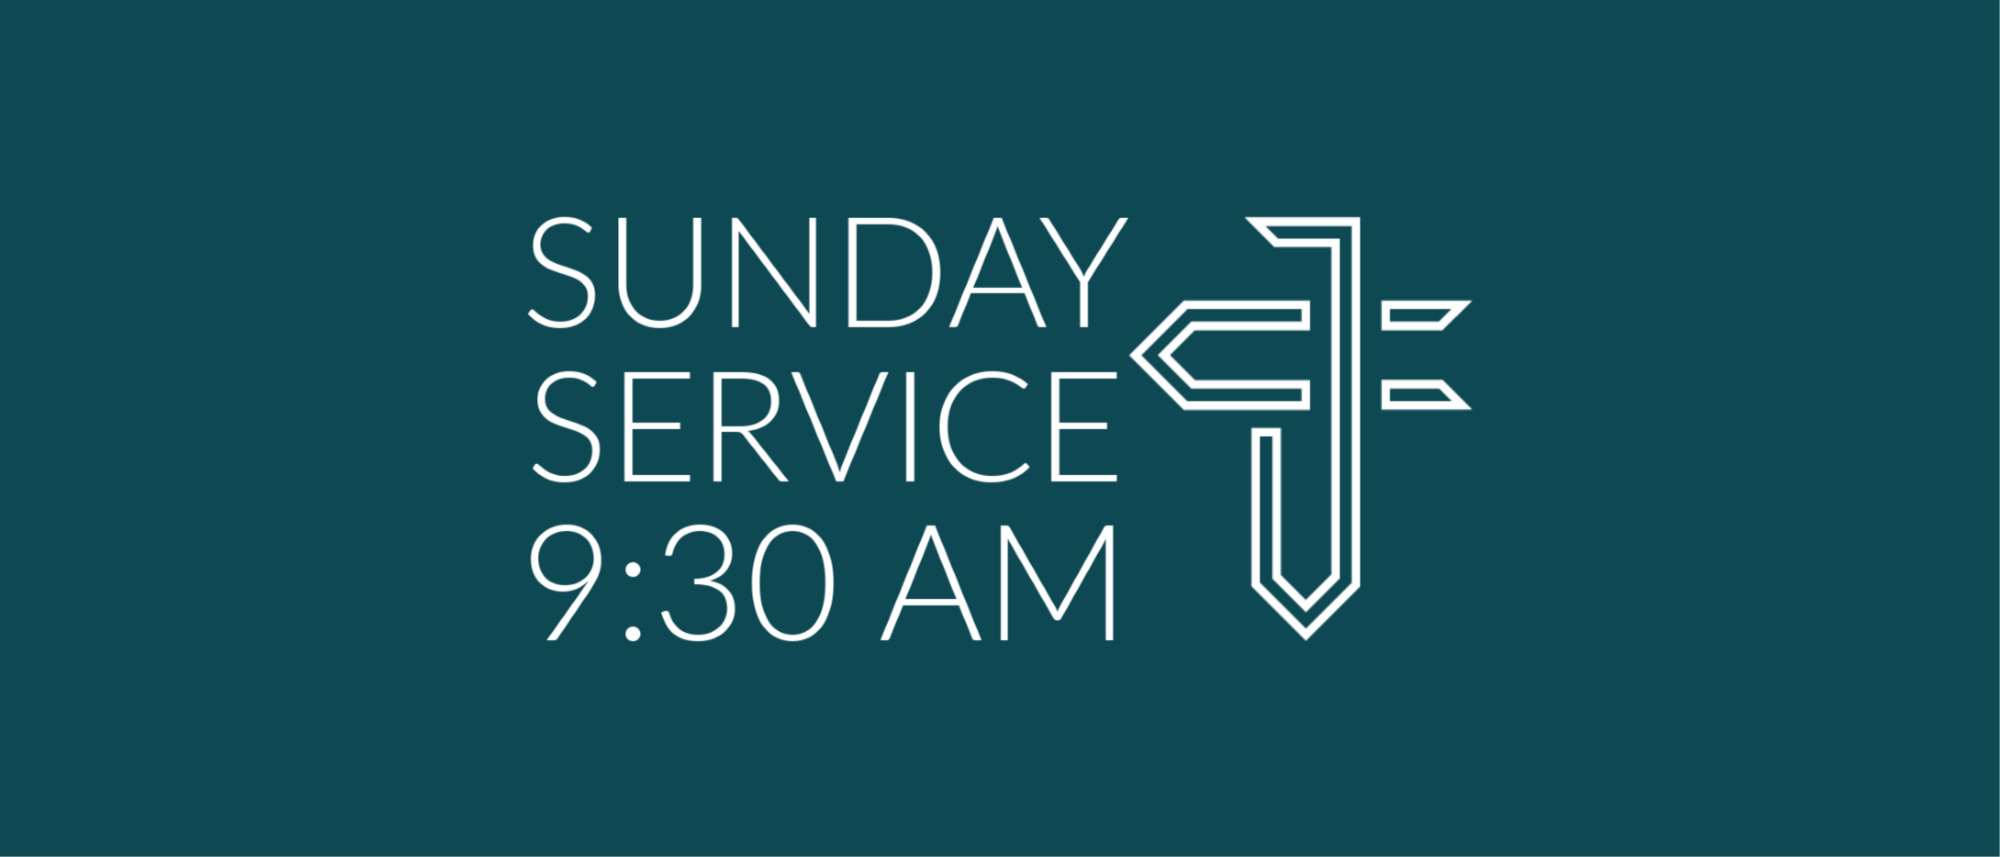 Our Sunday service starts at 9:30 AM